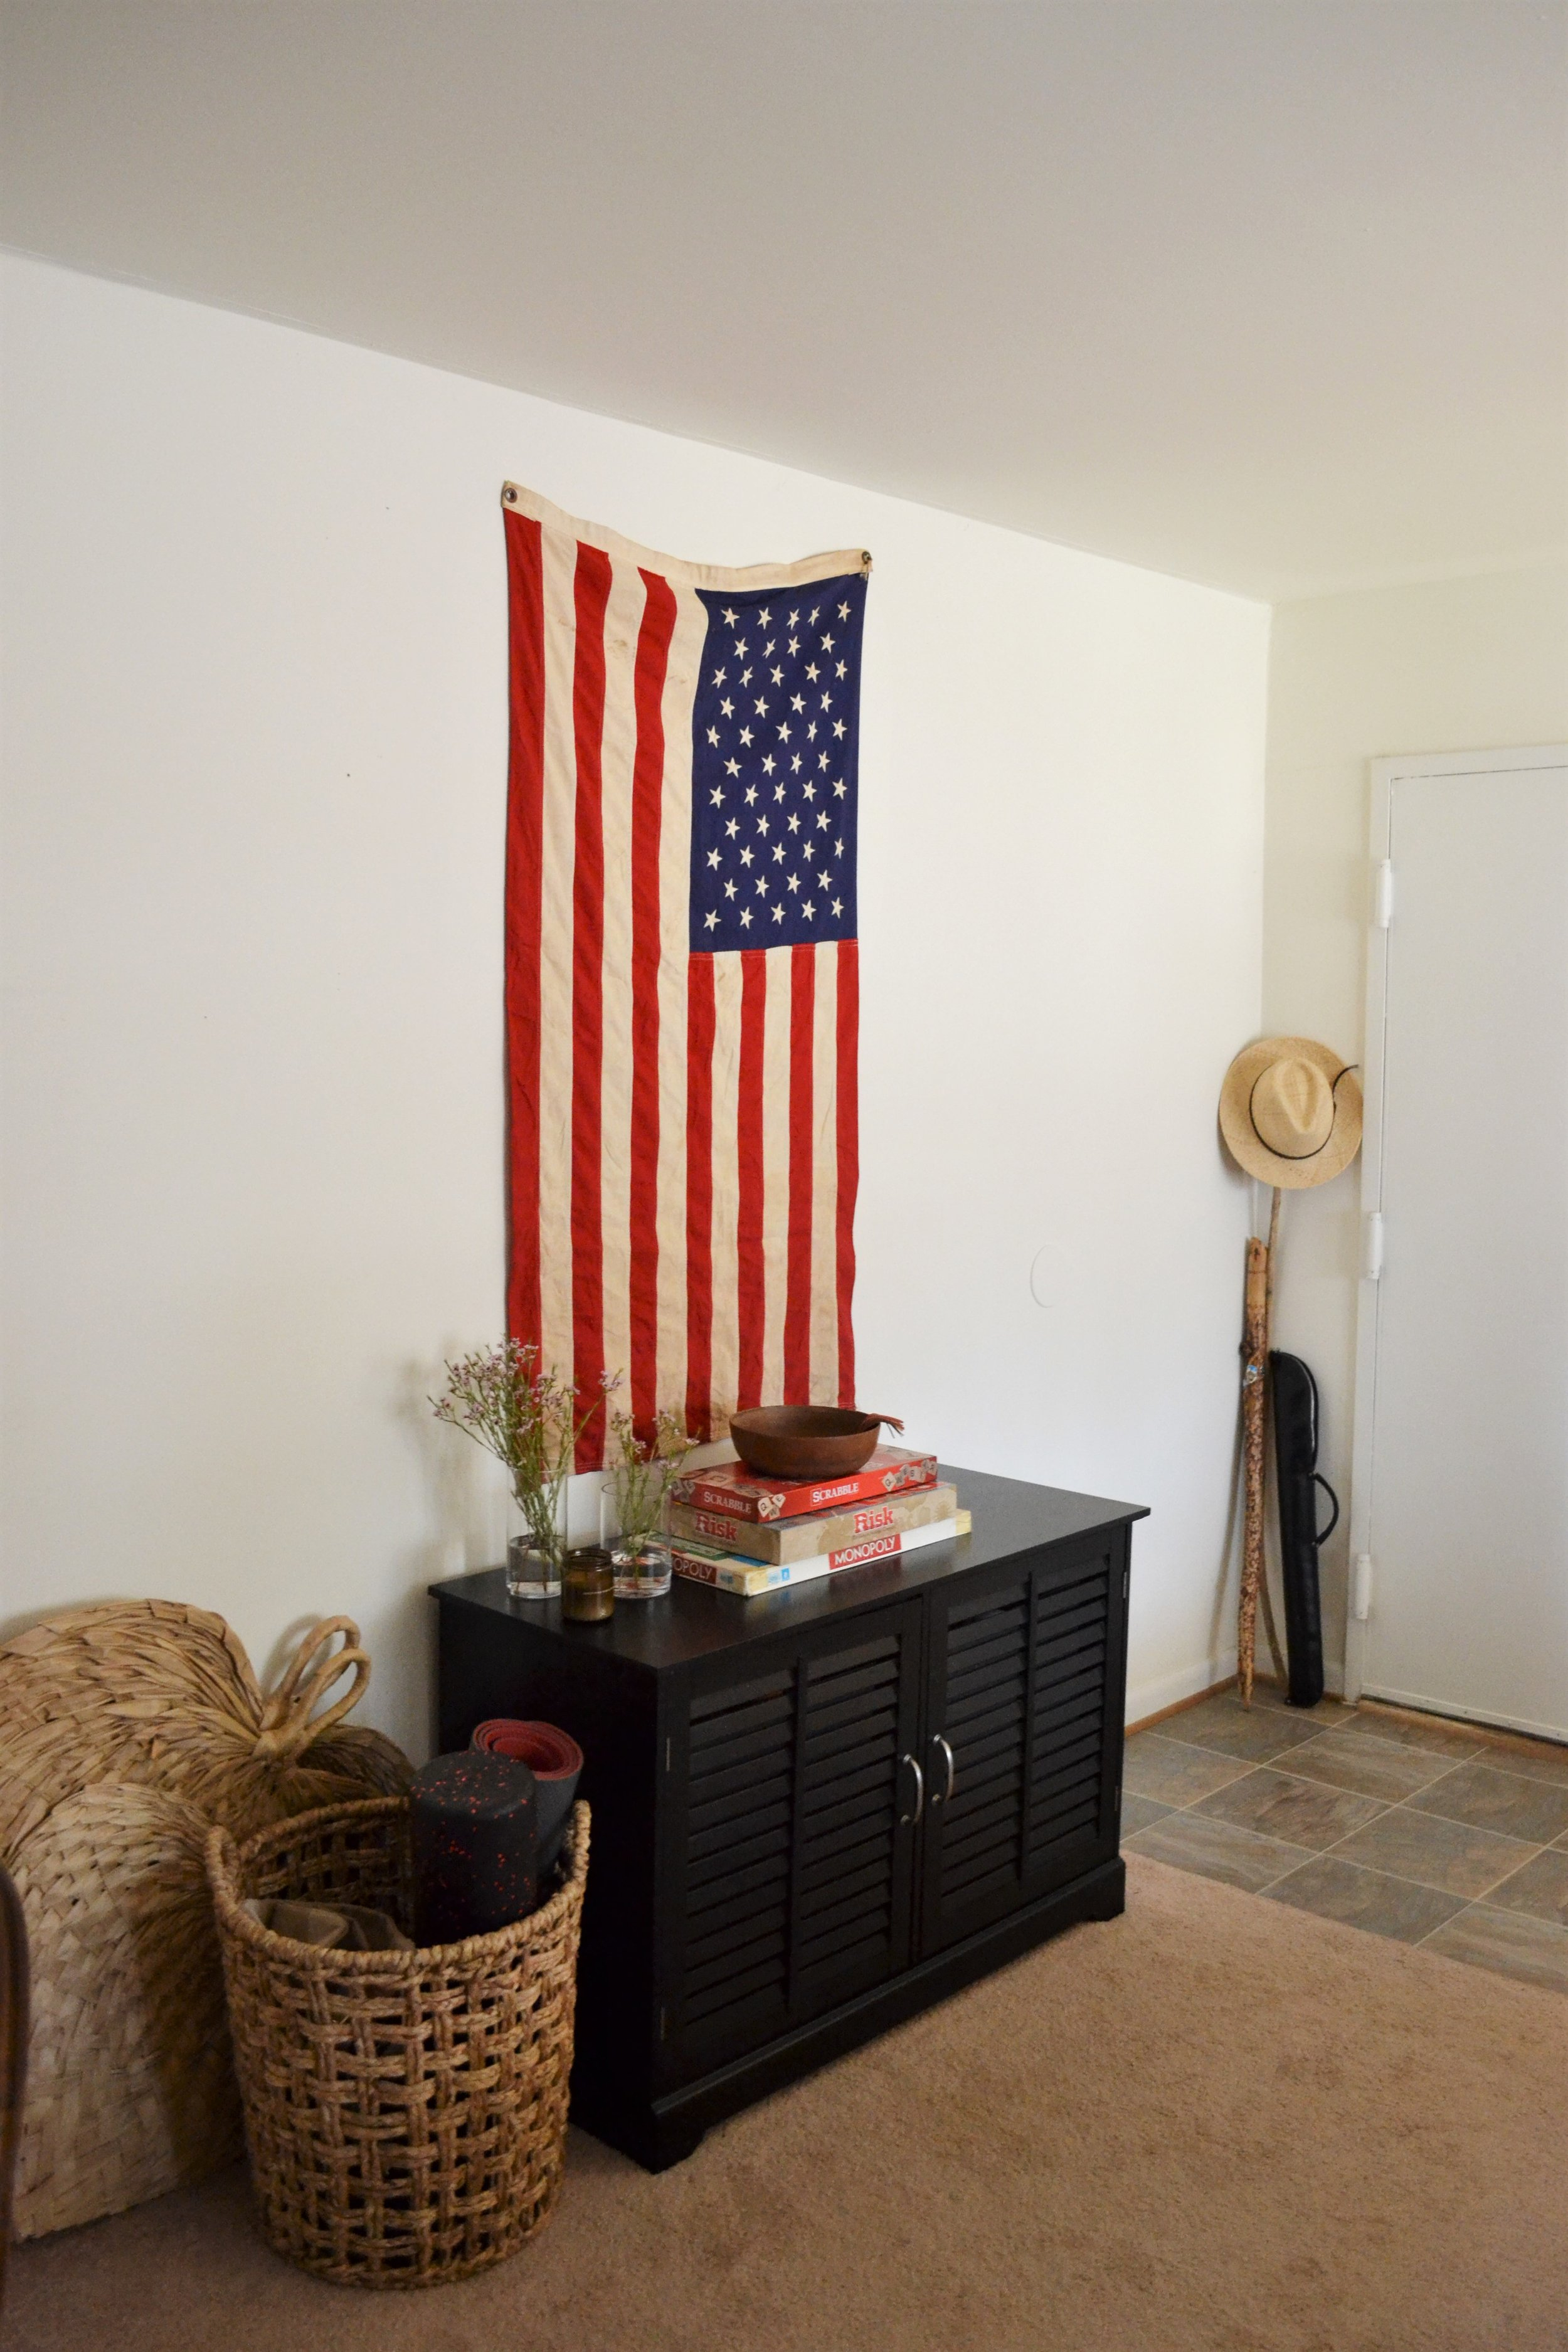 1 Entry Styled 3 Ways - Making Room for Peace 10.JPG